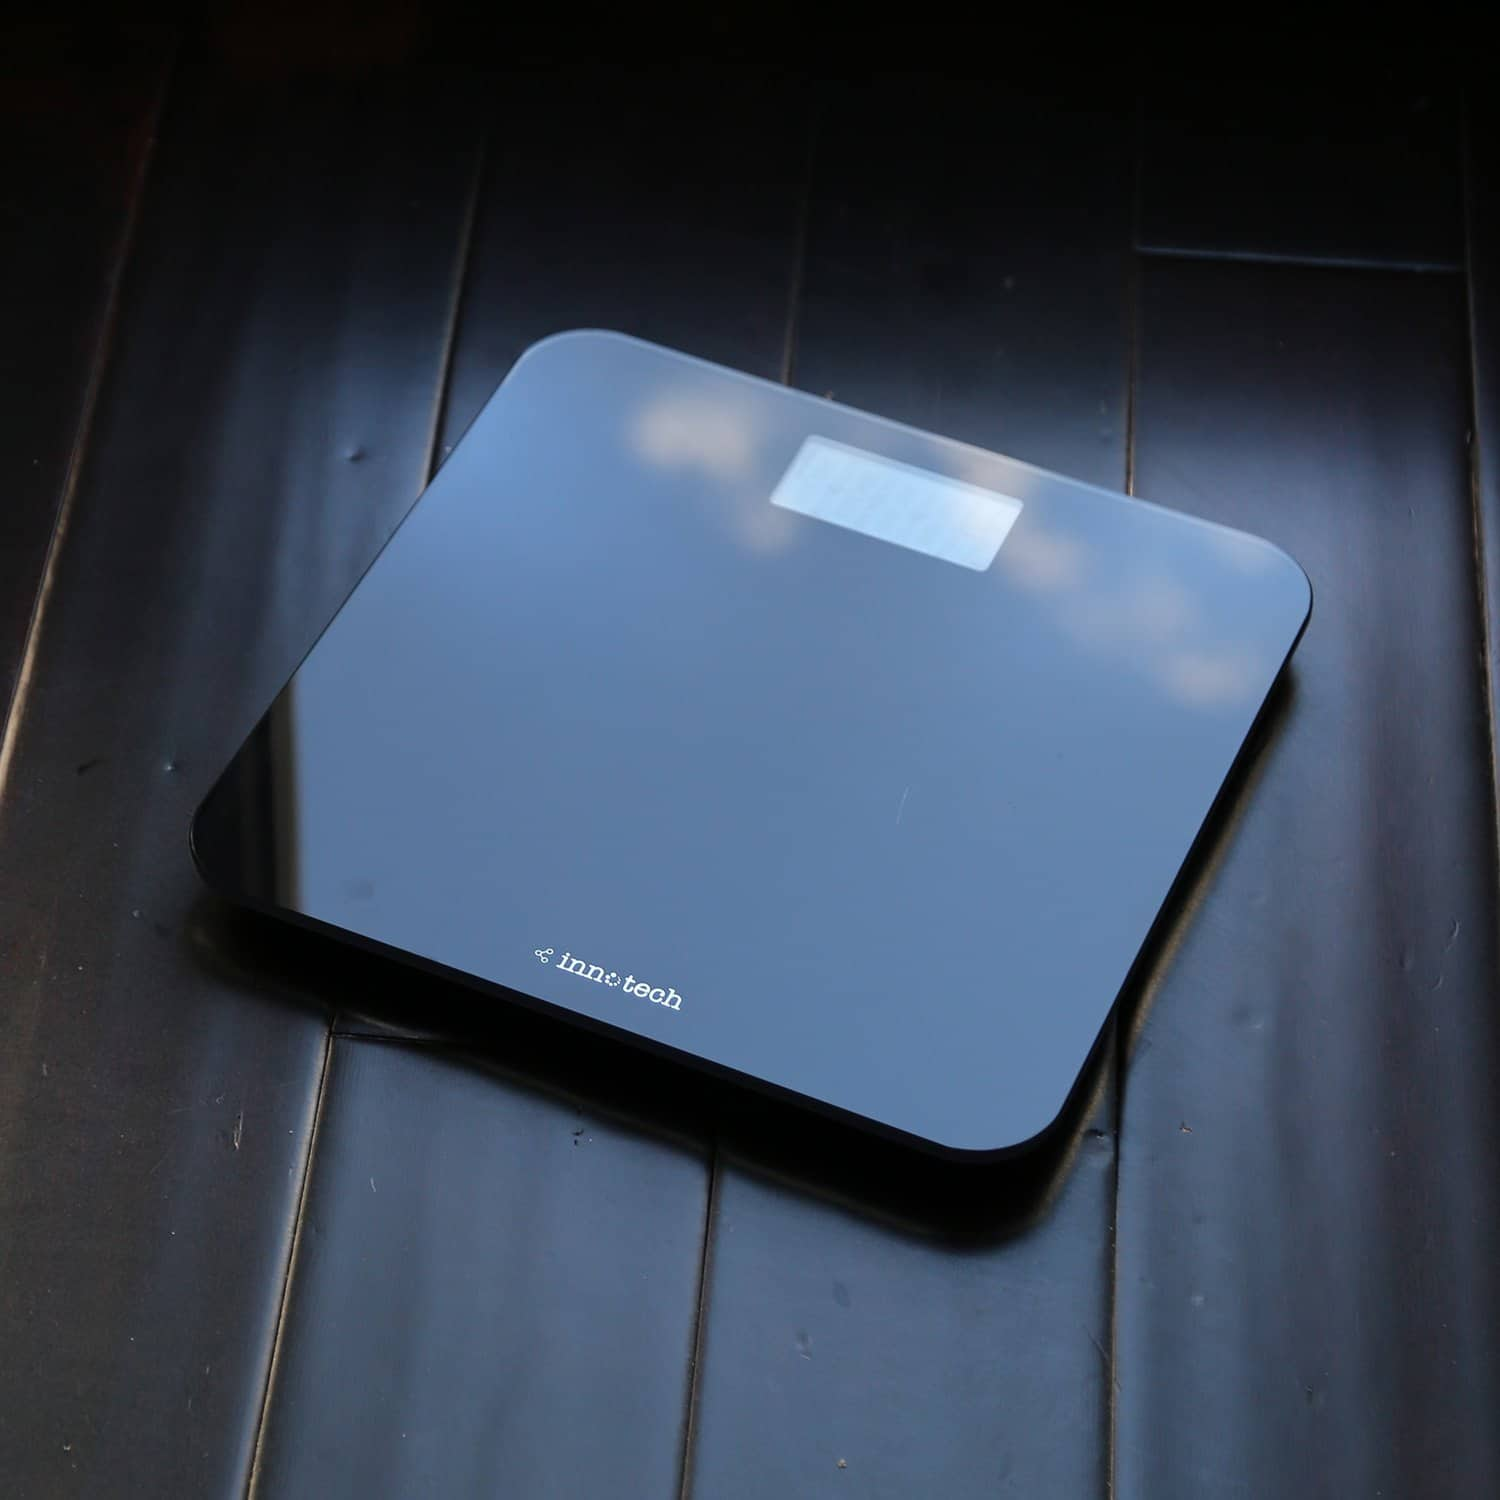 Innotech Digital Bathroom Scale with Easy-to-Read Backlit LCD (Black) $13.99 at AMAZON